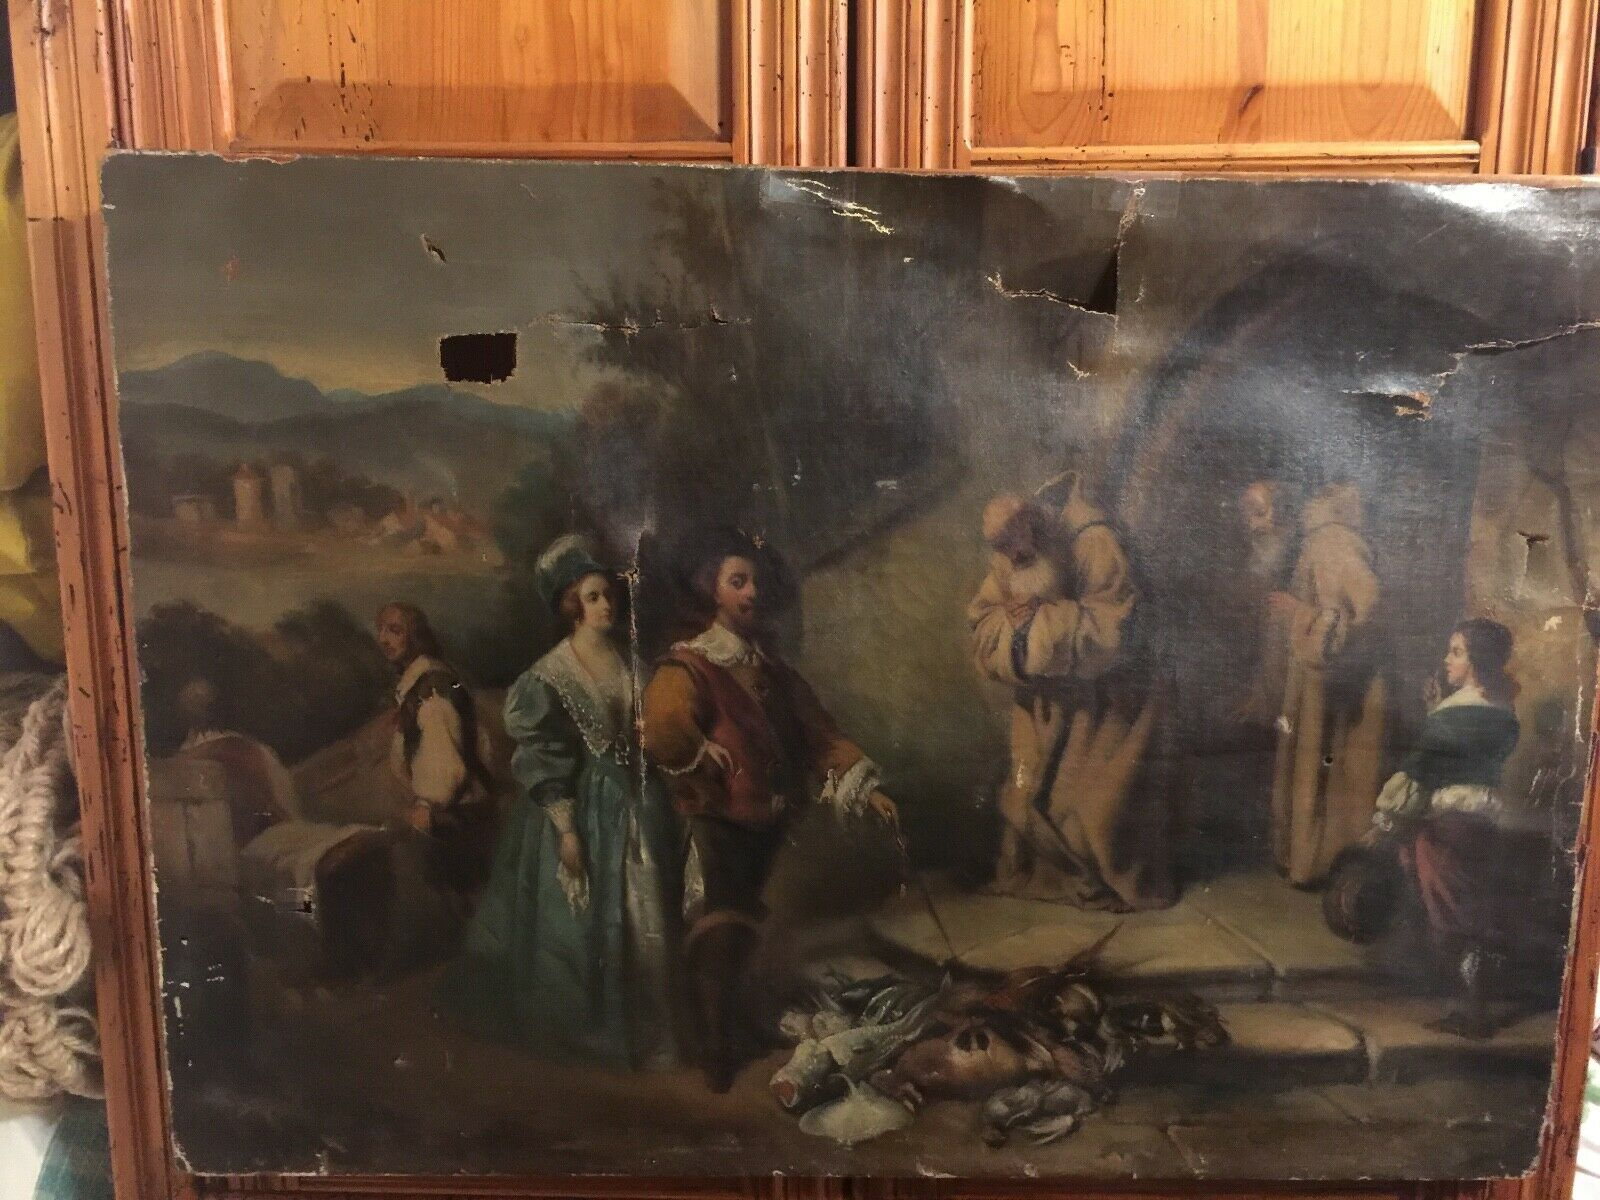 Vintage Signed 1855 Painting On Canvas Needs Restoring Very Large 35 X25 . - $125.00